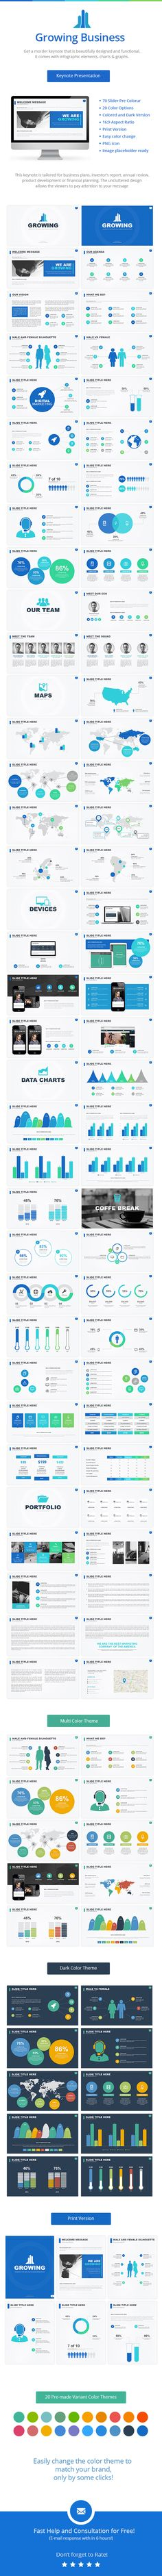 51 best presentation images on pinterest charts infographic and buy growing powerpoint presentation template by dzinerstuff on graphicriver get a modern powerpoint presentation that is beautifully designed and toneelgroepblik Image collections